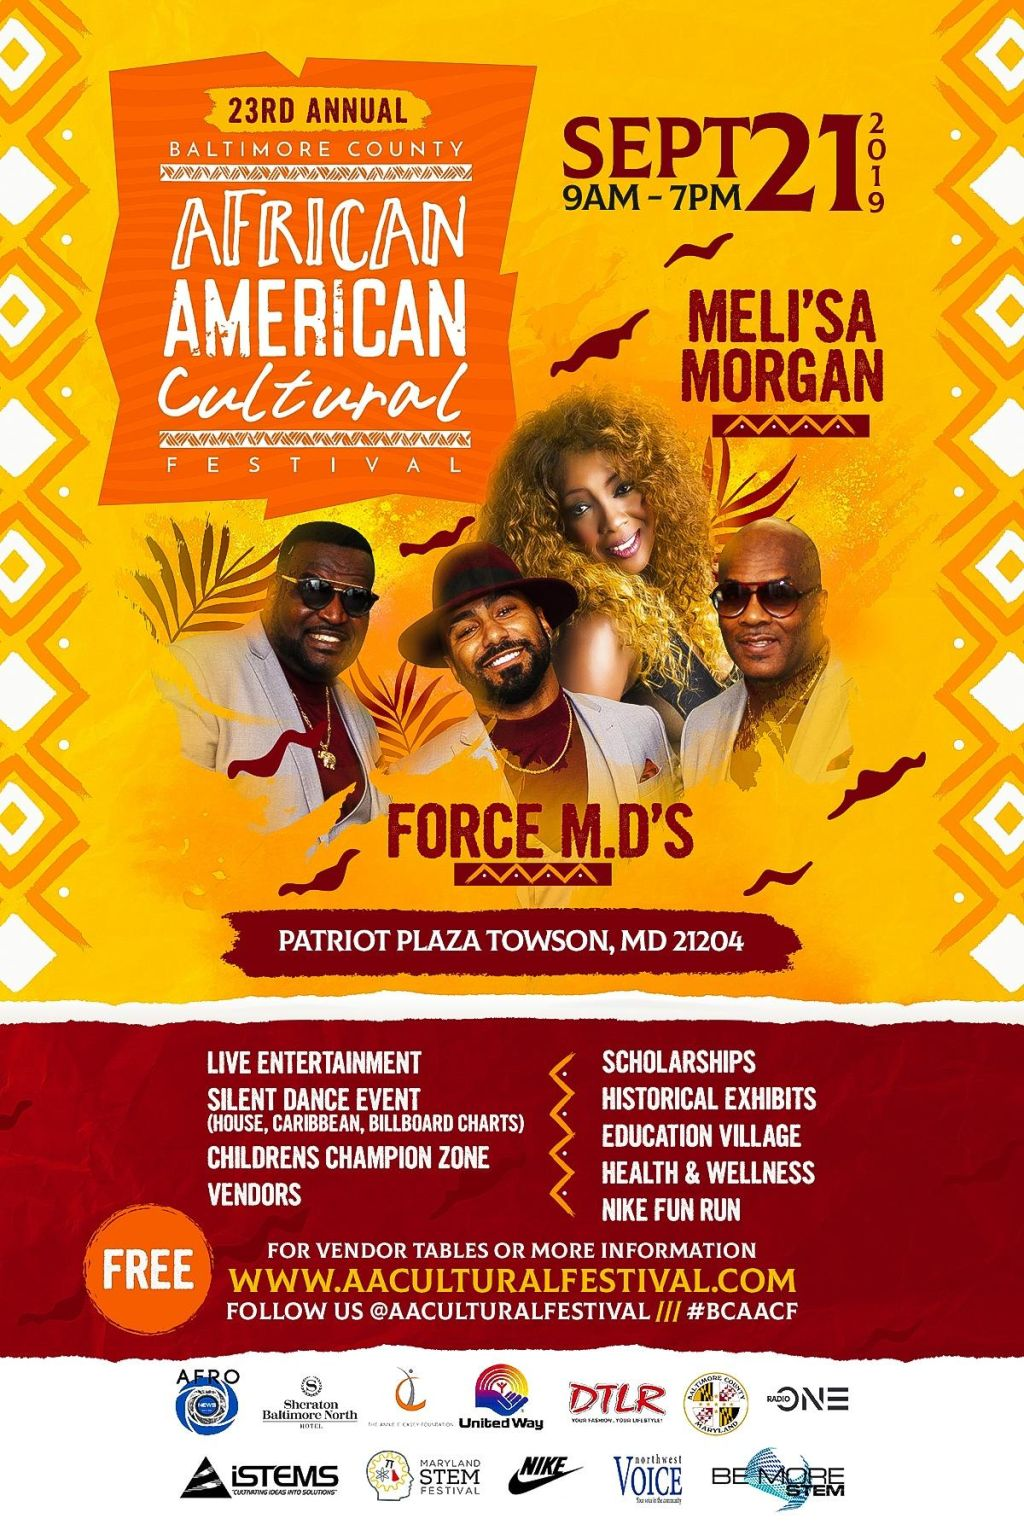 Baltimore County African-American Cultural Festival